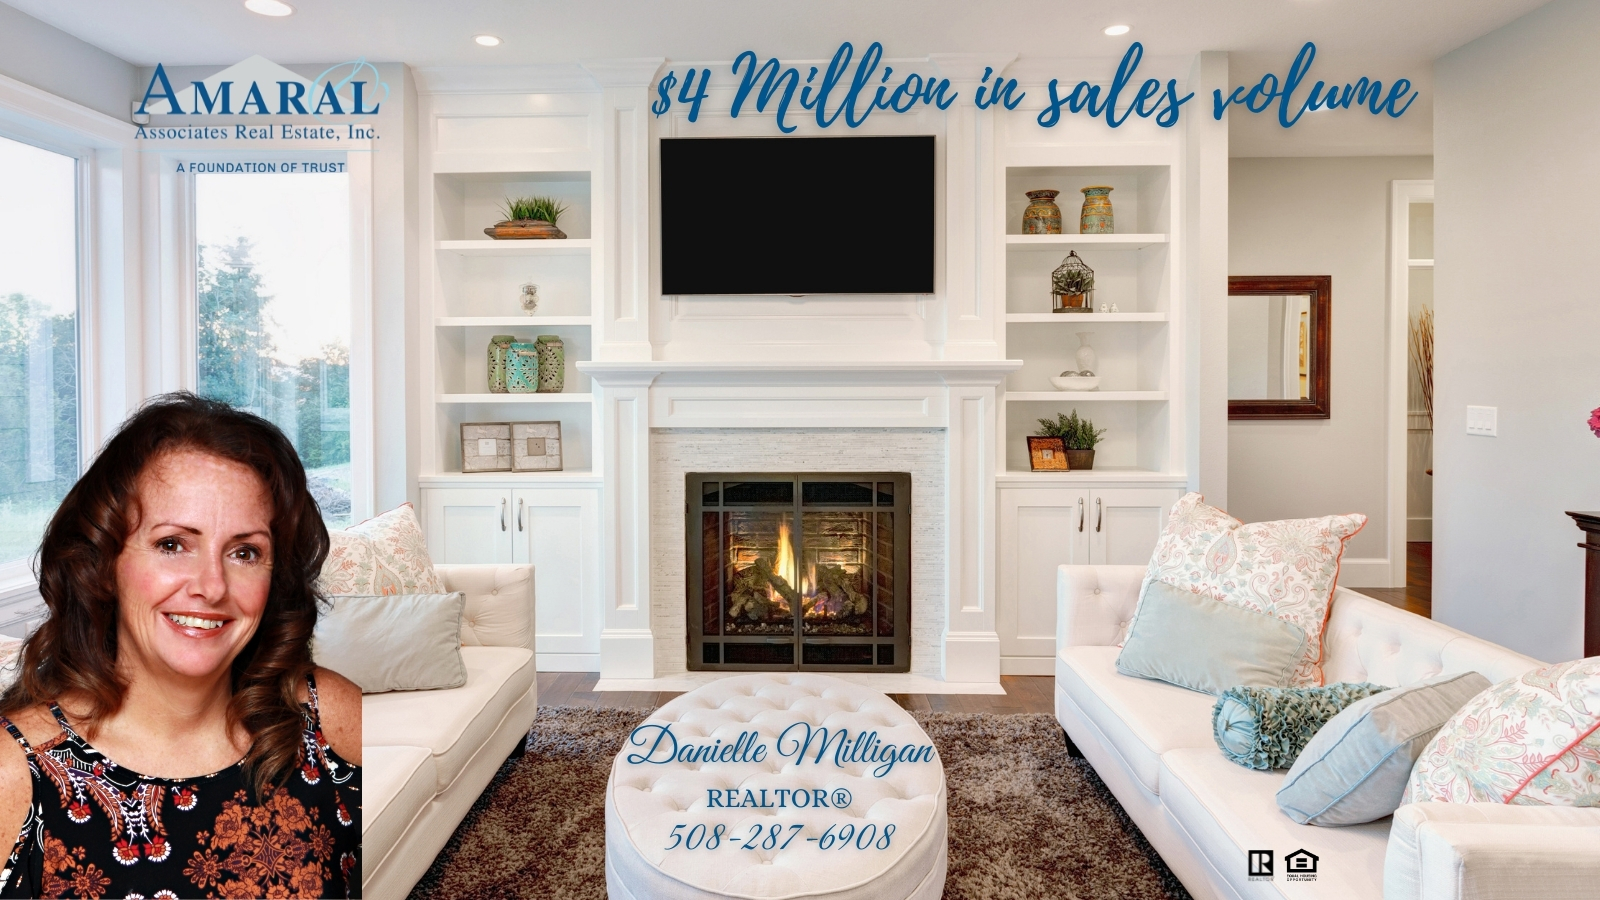 Congratulations to Danielle Milligan on reaching $4 Million in sales volume so far this year!